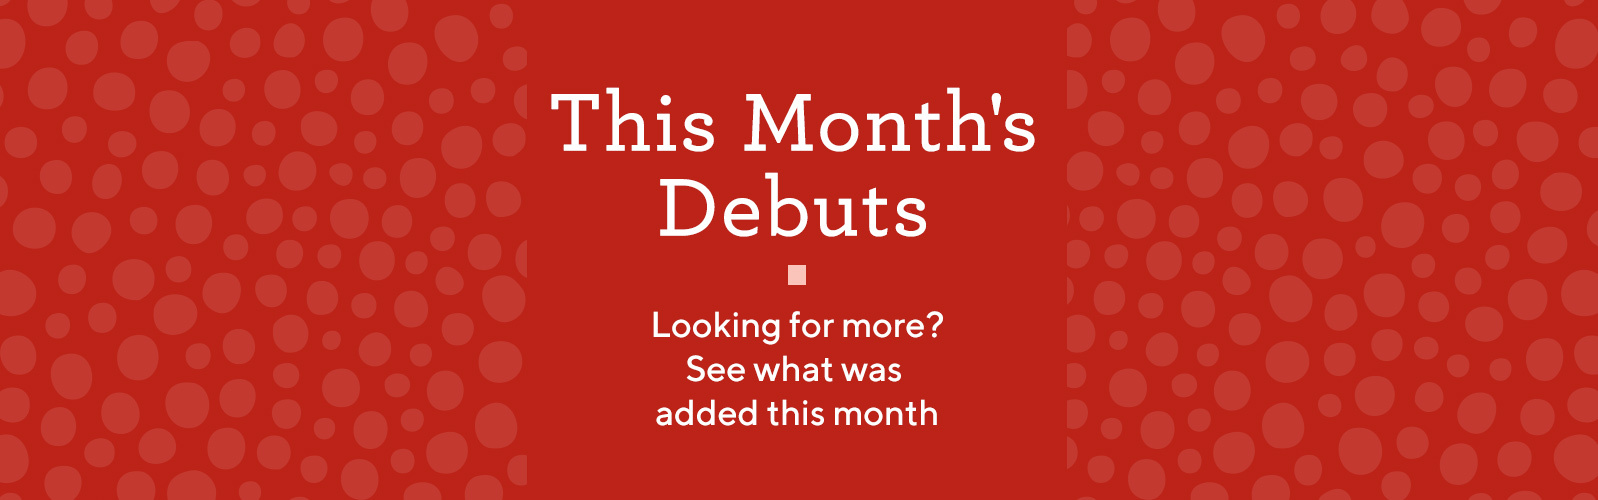 This Month's Debuts  Looking for more? Find the latest additions.